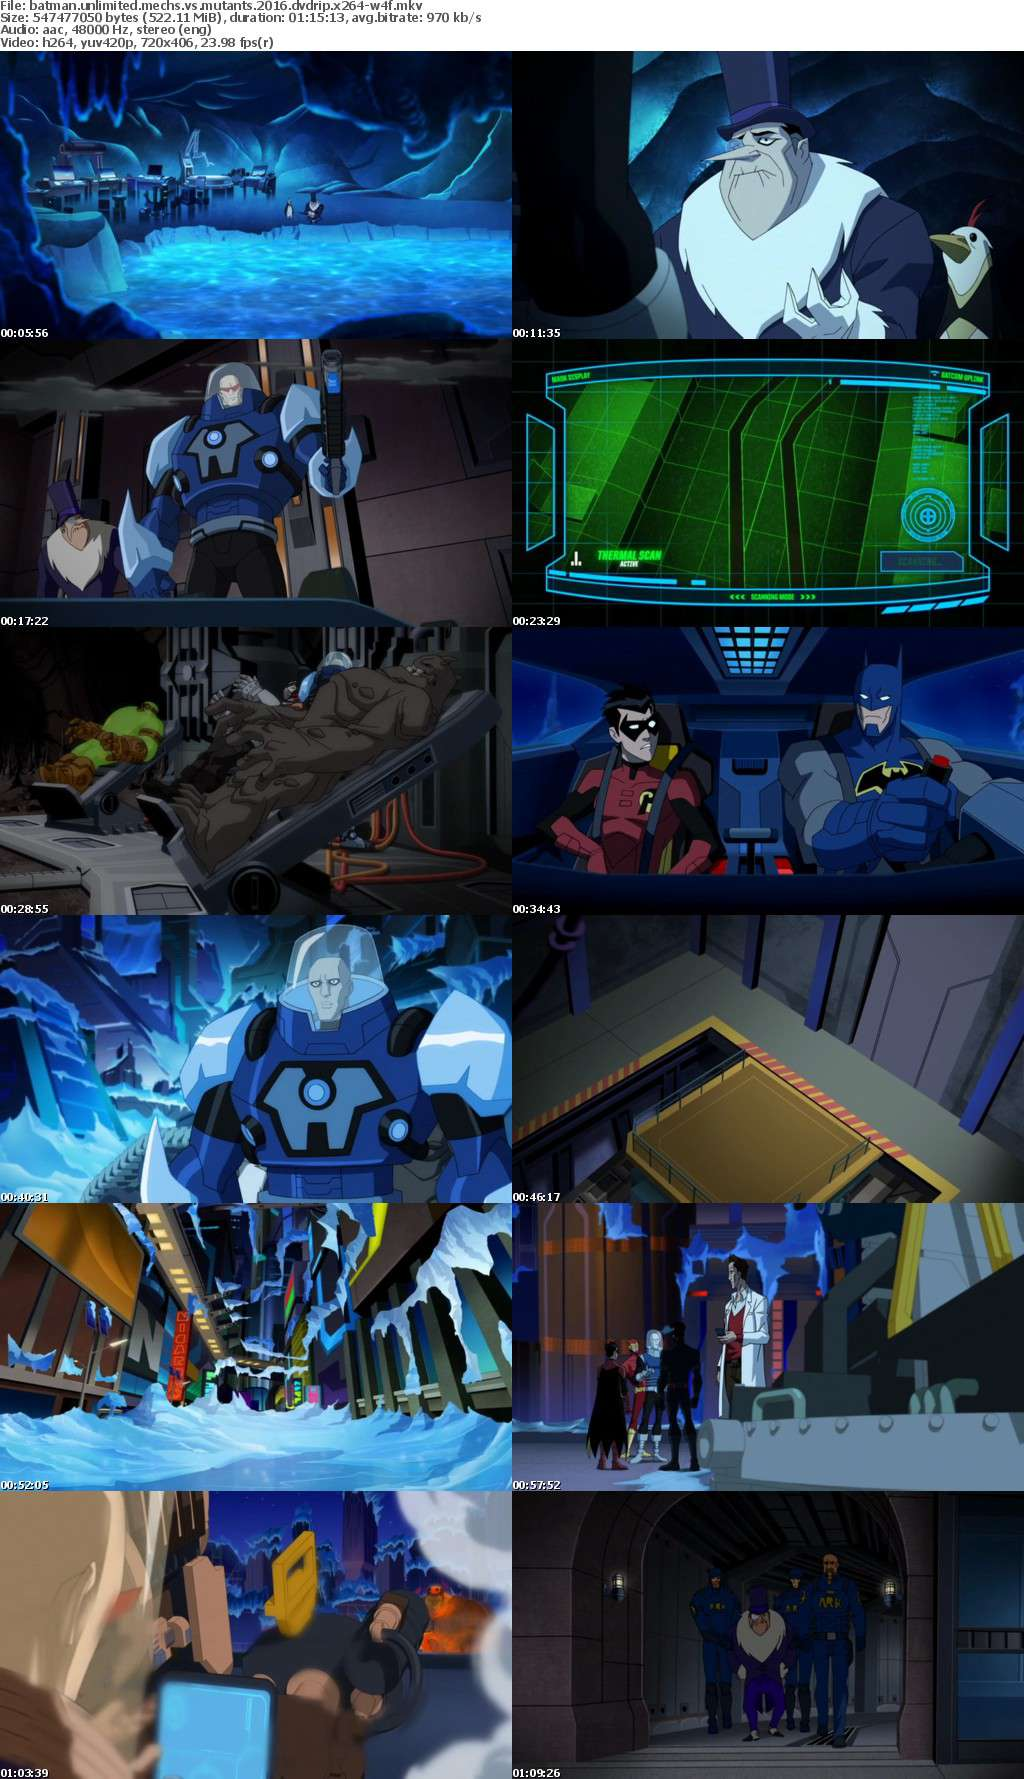 Batman Unlimited Mechs vs Mutants 2016 DVDRip x264-W4F